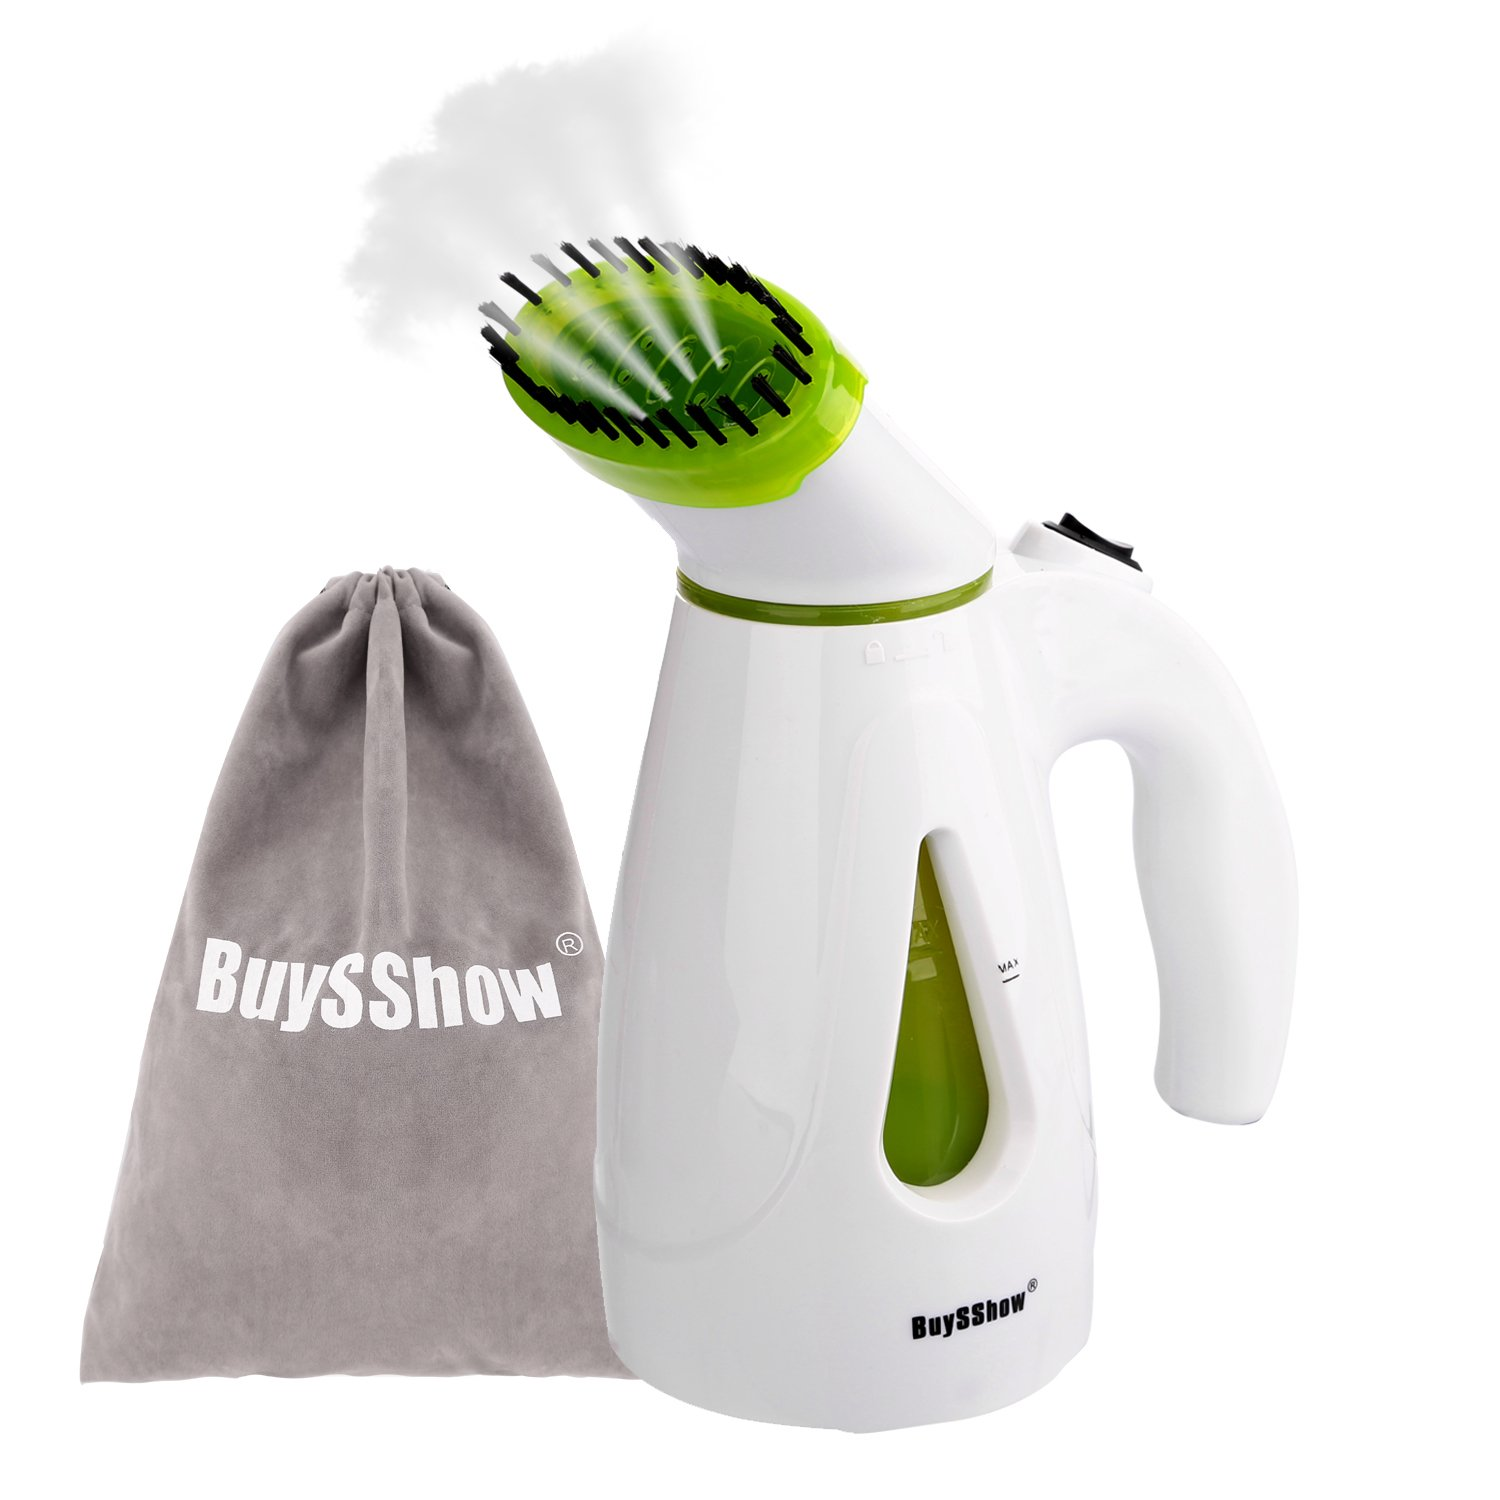 BuySShow Multi-functional Portable Garment Steamer,Mini Travel Steamer,Fabric Steamer, Face steamer,Humidifier,Powerful Handheld Steamer with Fast Heat-up,Travel Pouch and Brush Included